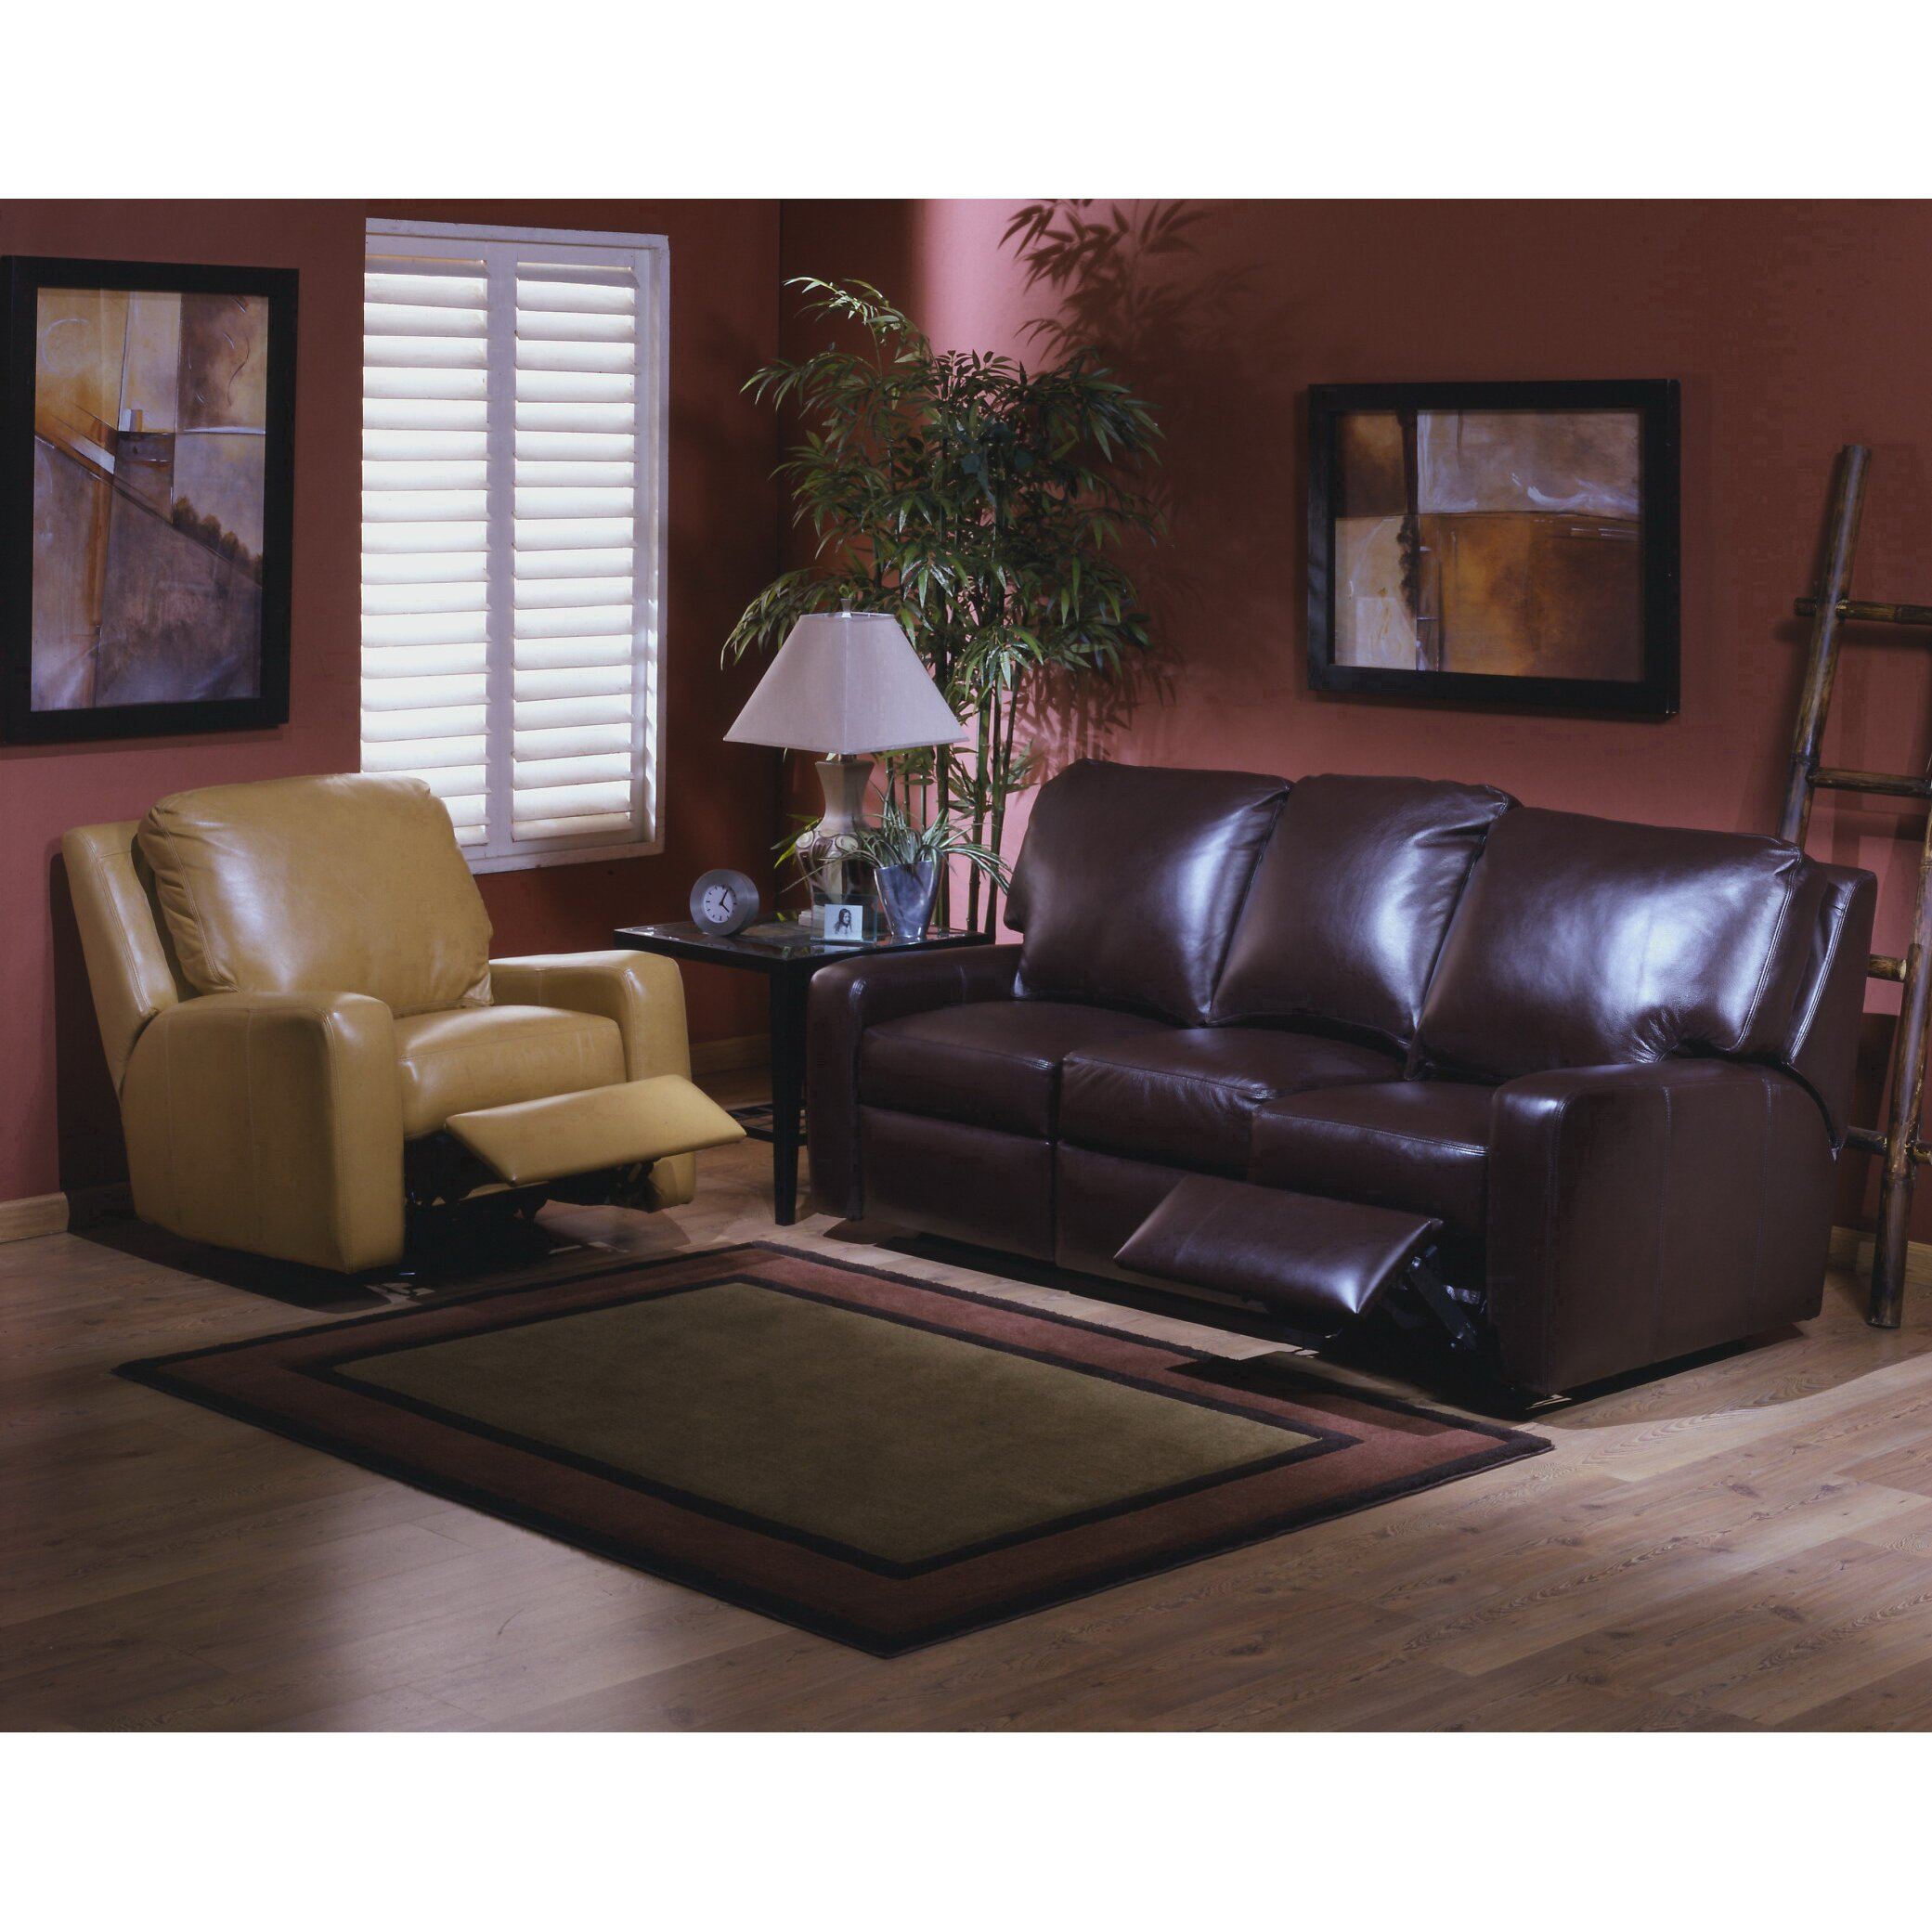 Leather Living Room Sets On Omnia Leather Mirage Reclining Leather Living Room Set Reviews